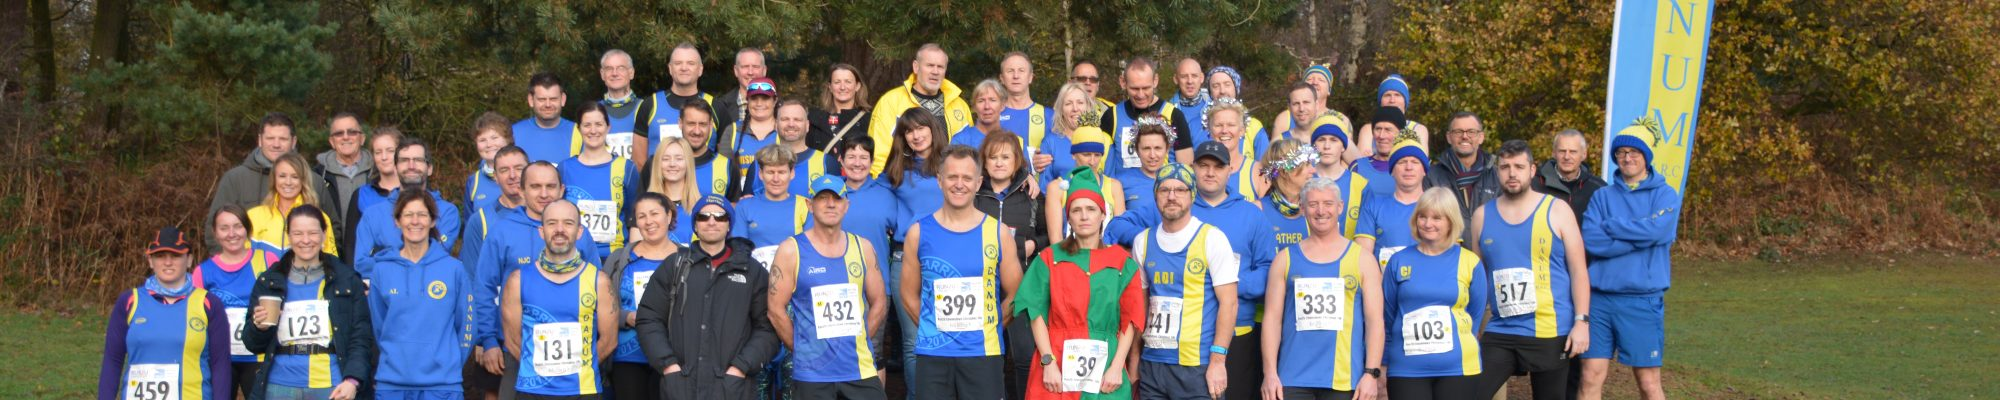 Danum Harriers Running Club